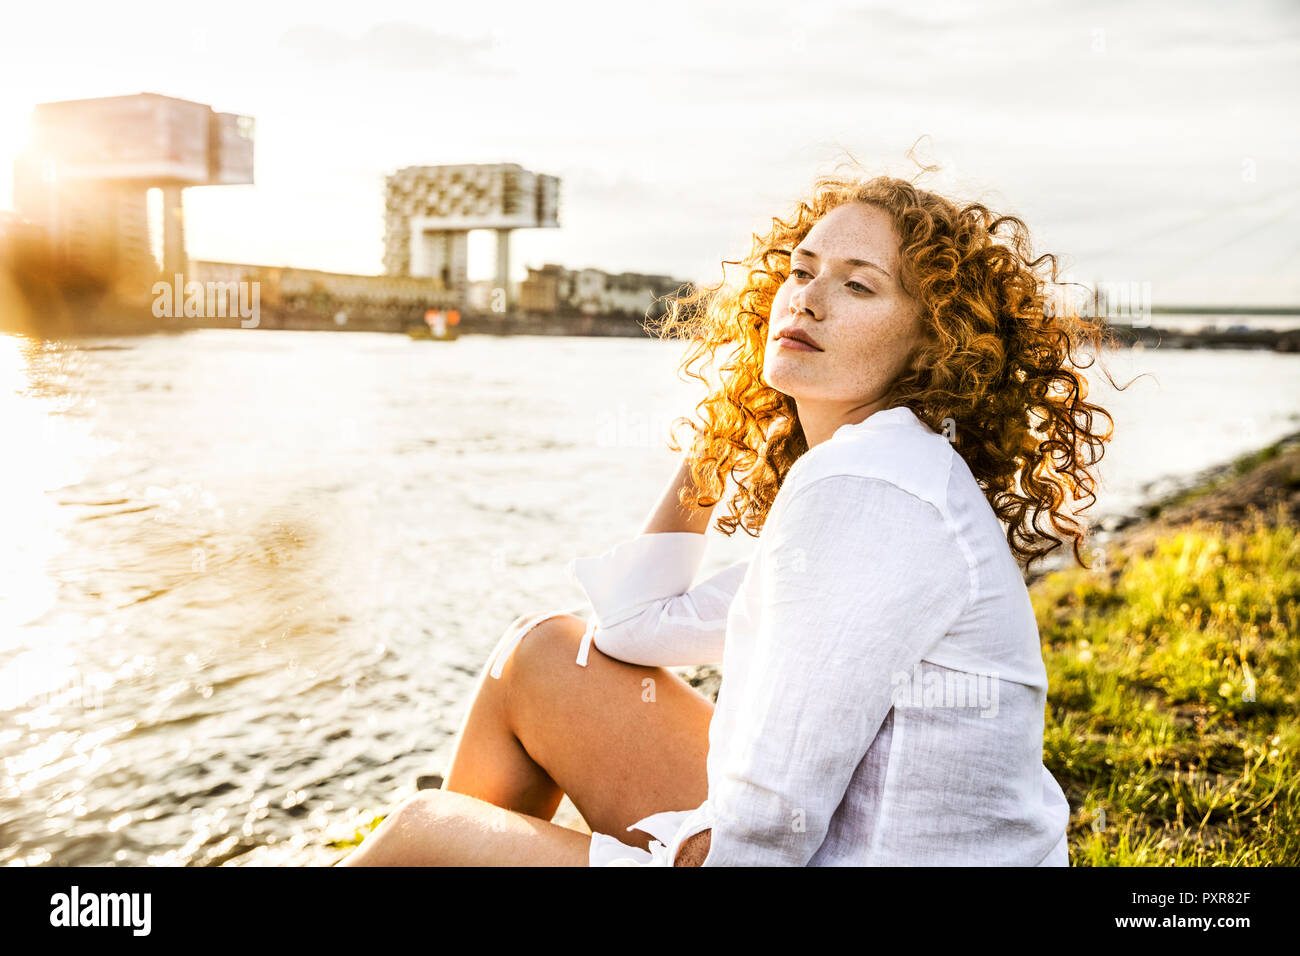 Germany, Cologne, portrait of young woman sitting at riverside in the evening - Stock Image